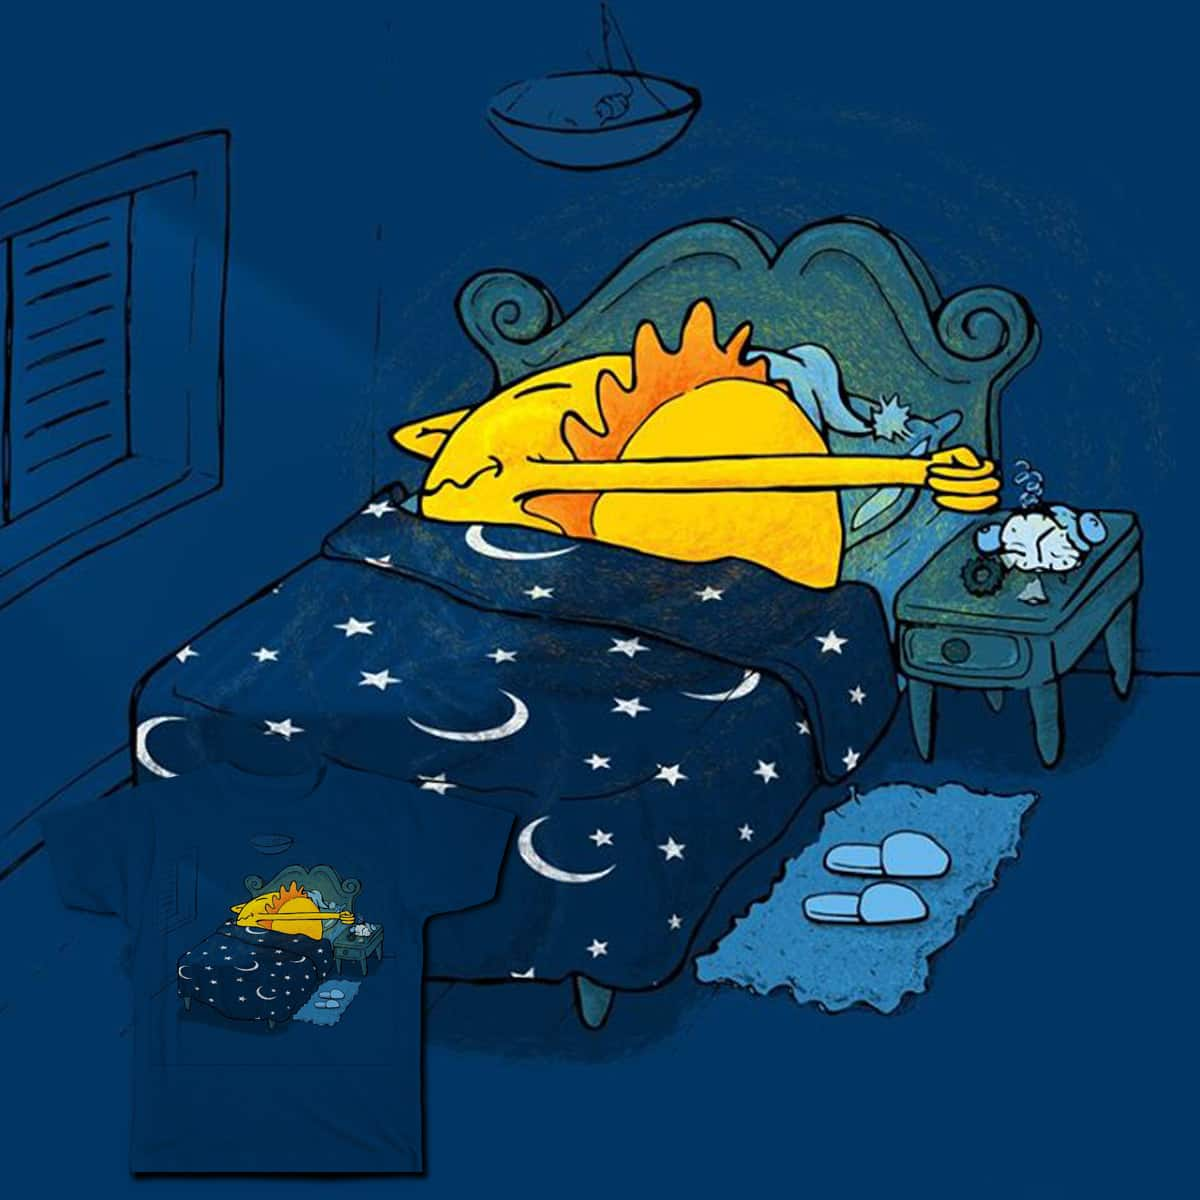 Snooze by Leandro Lima on Threadless